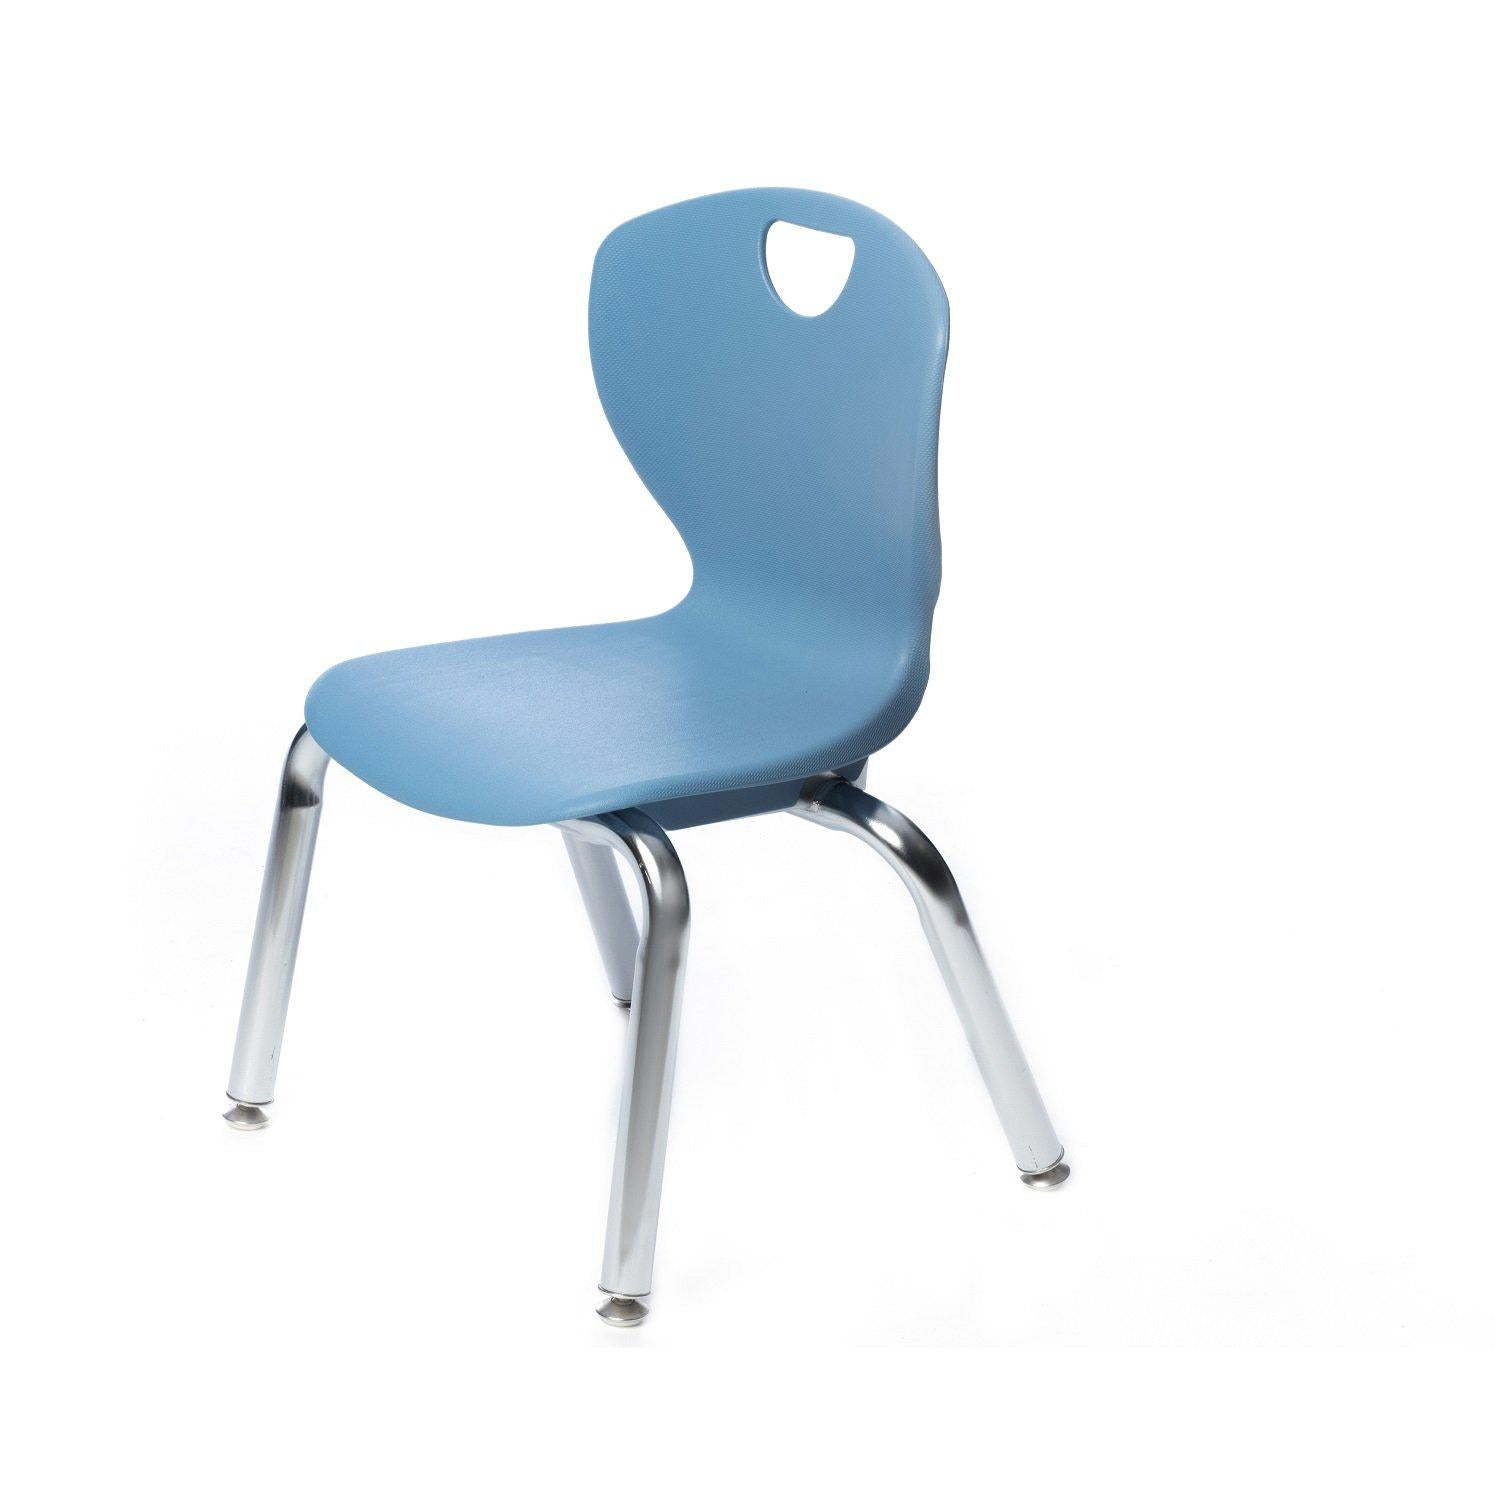 "Ovation Contemporary Classroom Stack Chair, 12"" Seat Height"